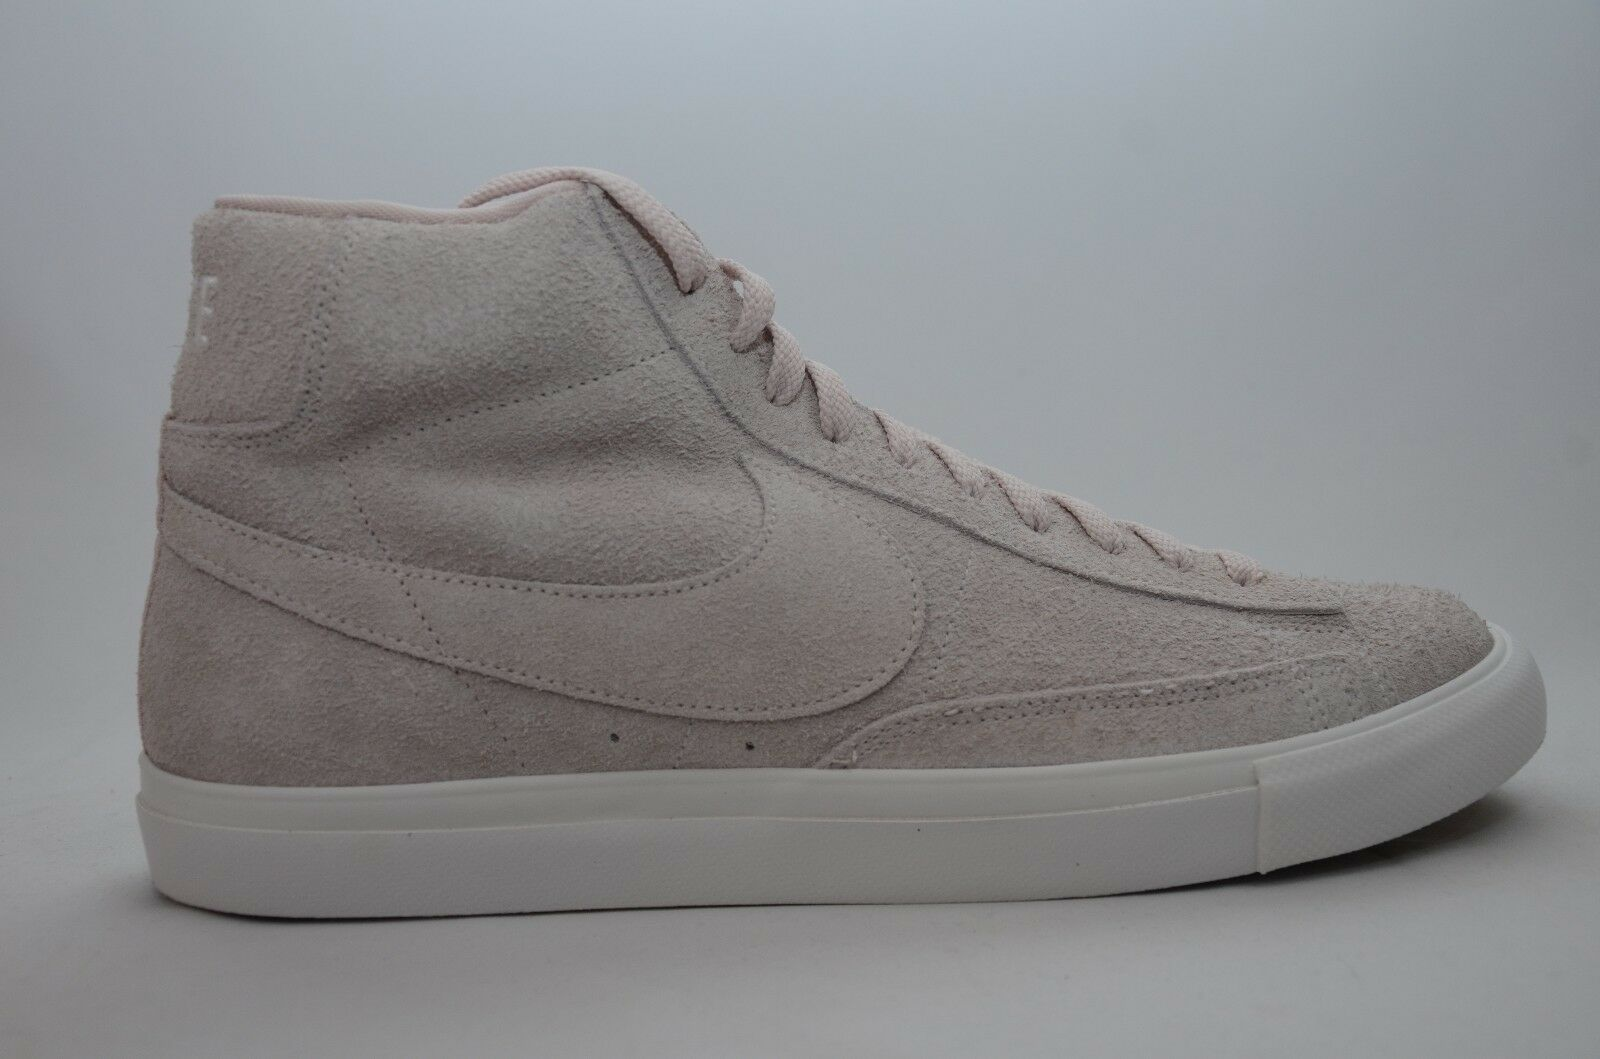 Nike Blazer Mid Silt Red Men's Size 8-13 New in Box 371761 607